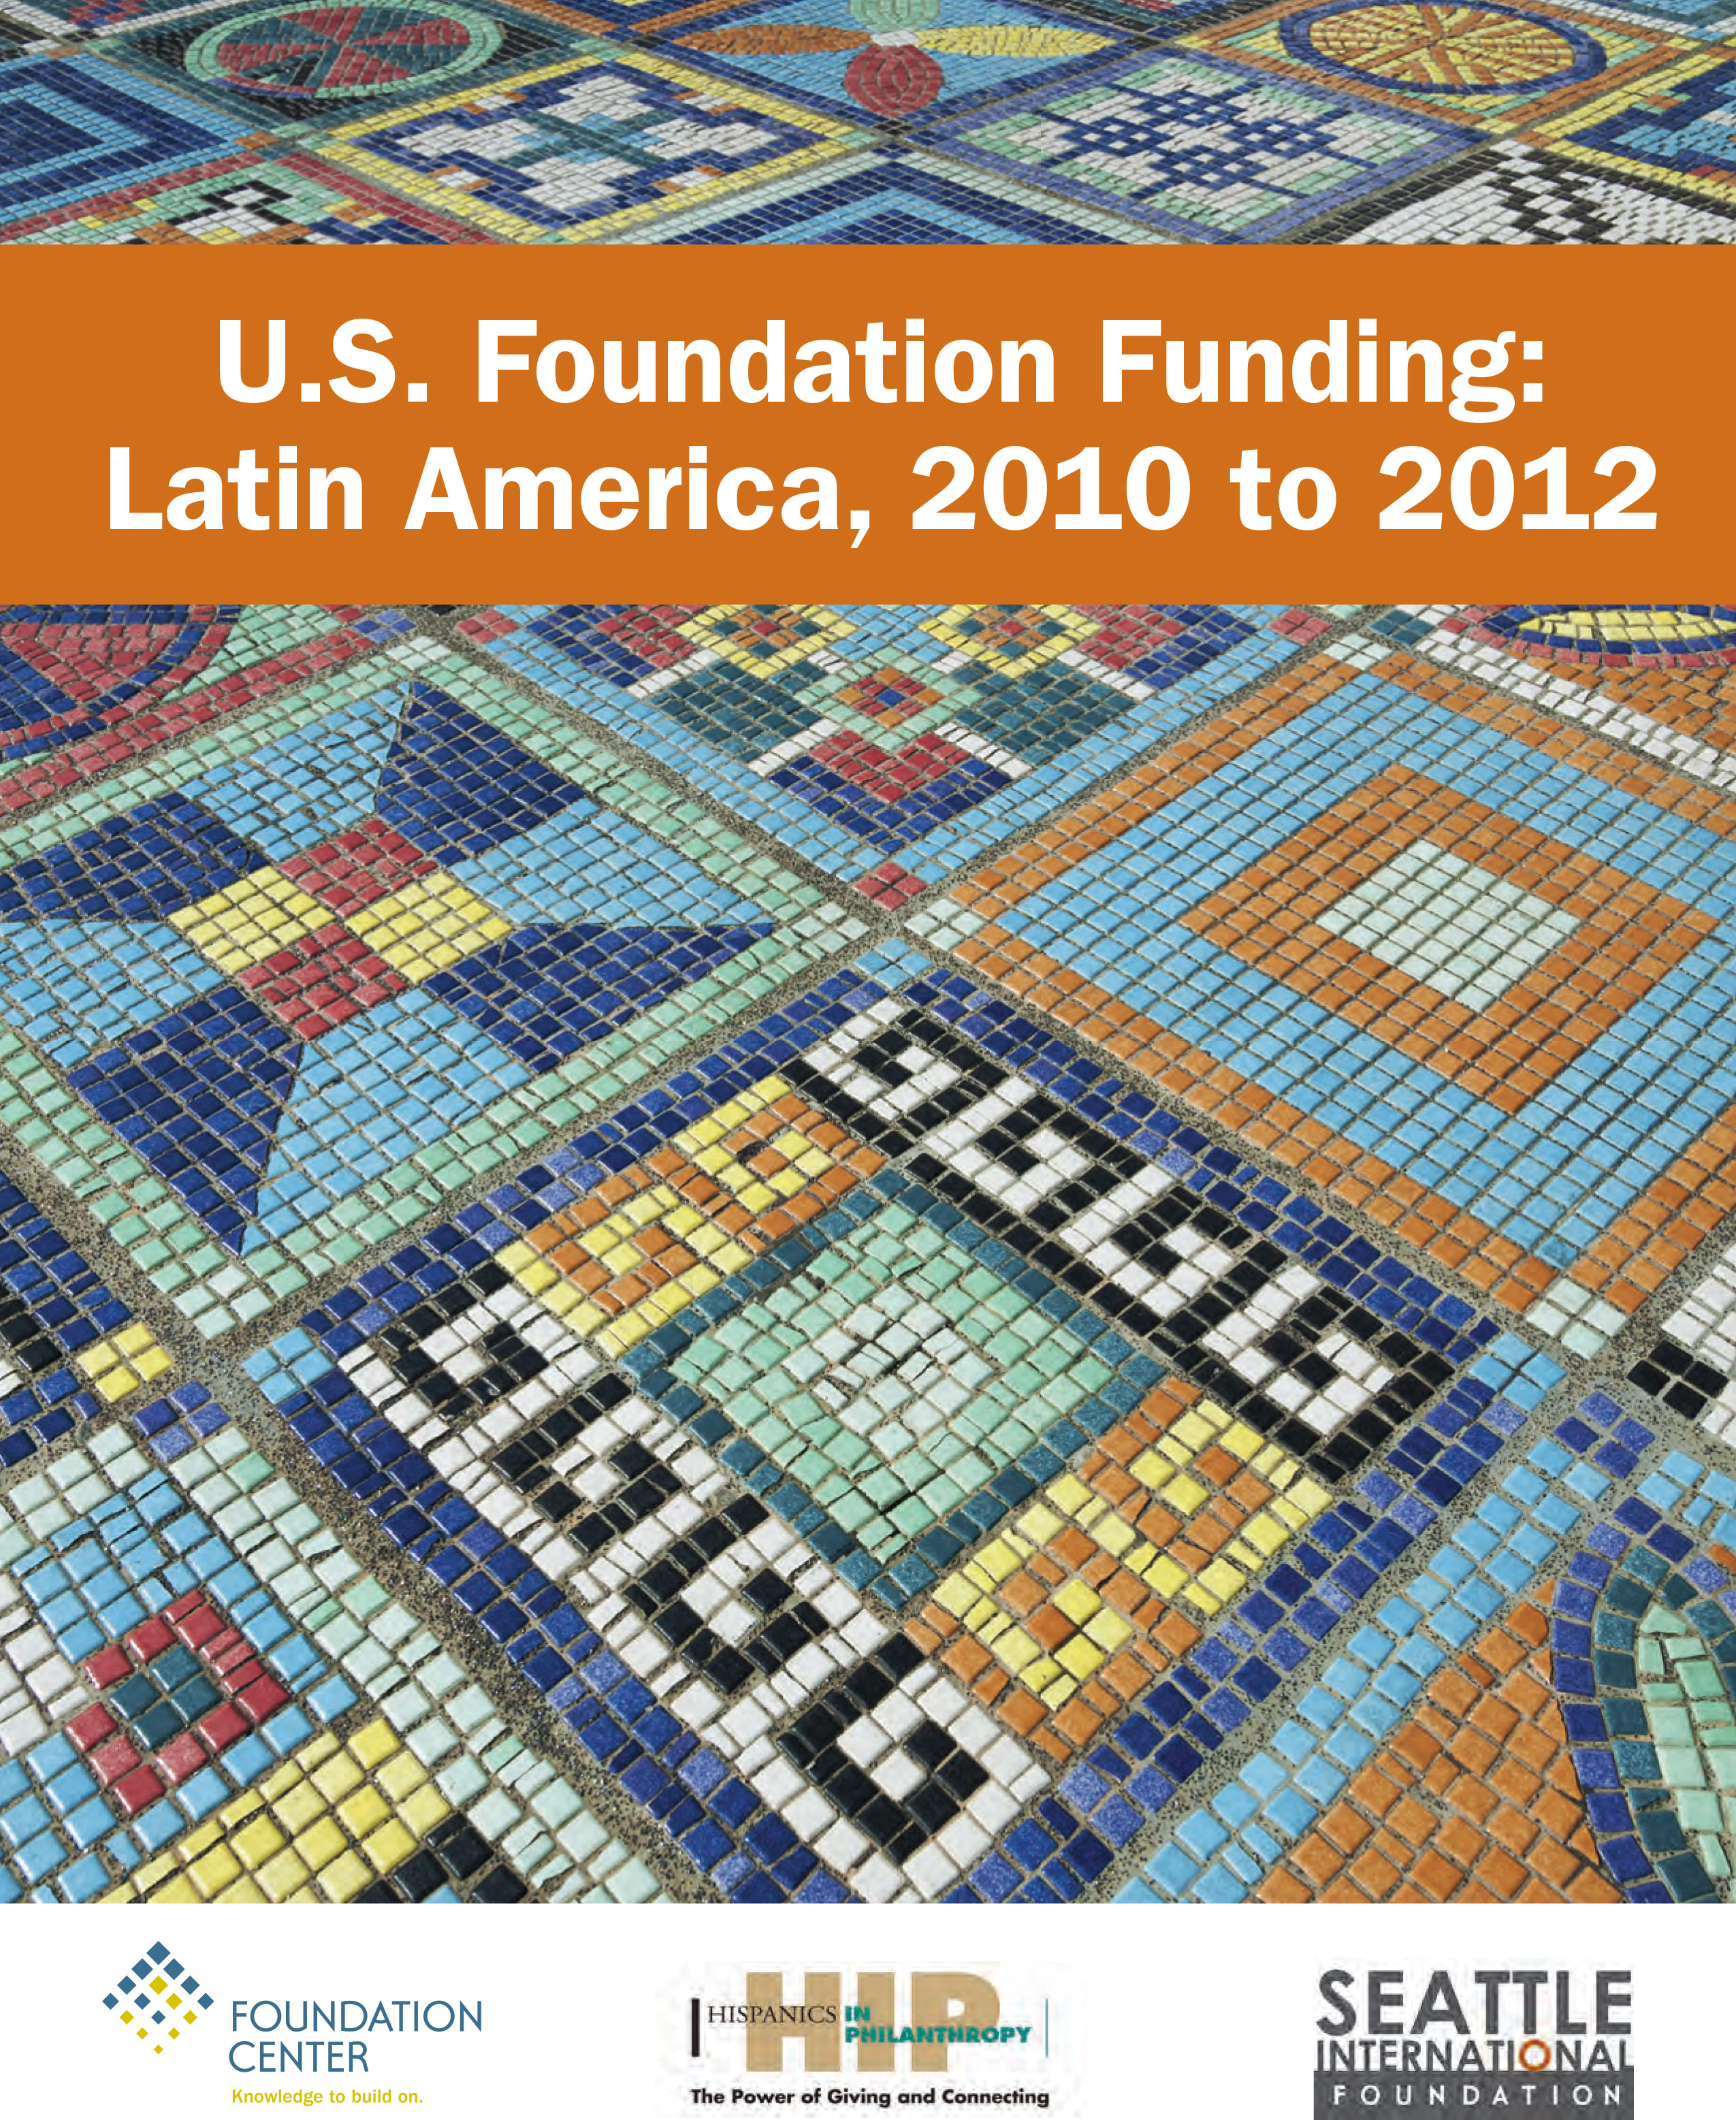 U.S. Foundation Funding: Latin America, 2010-2012